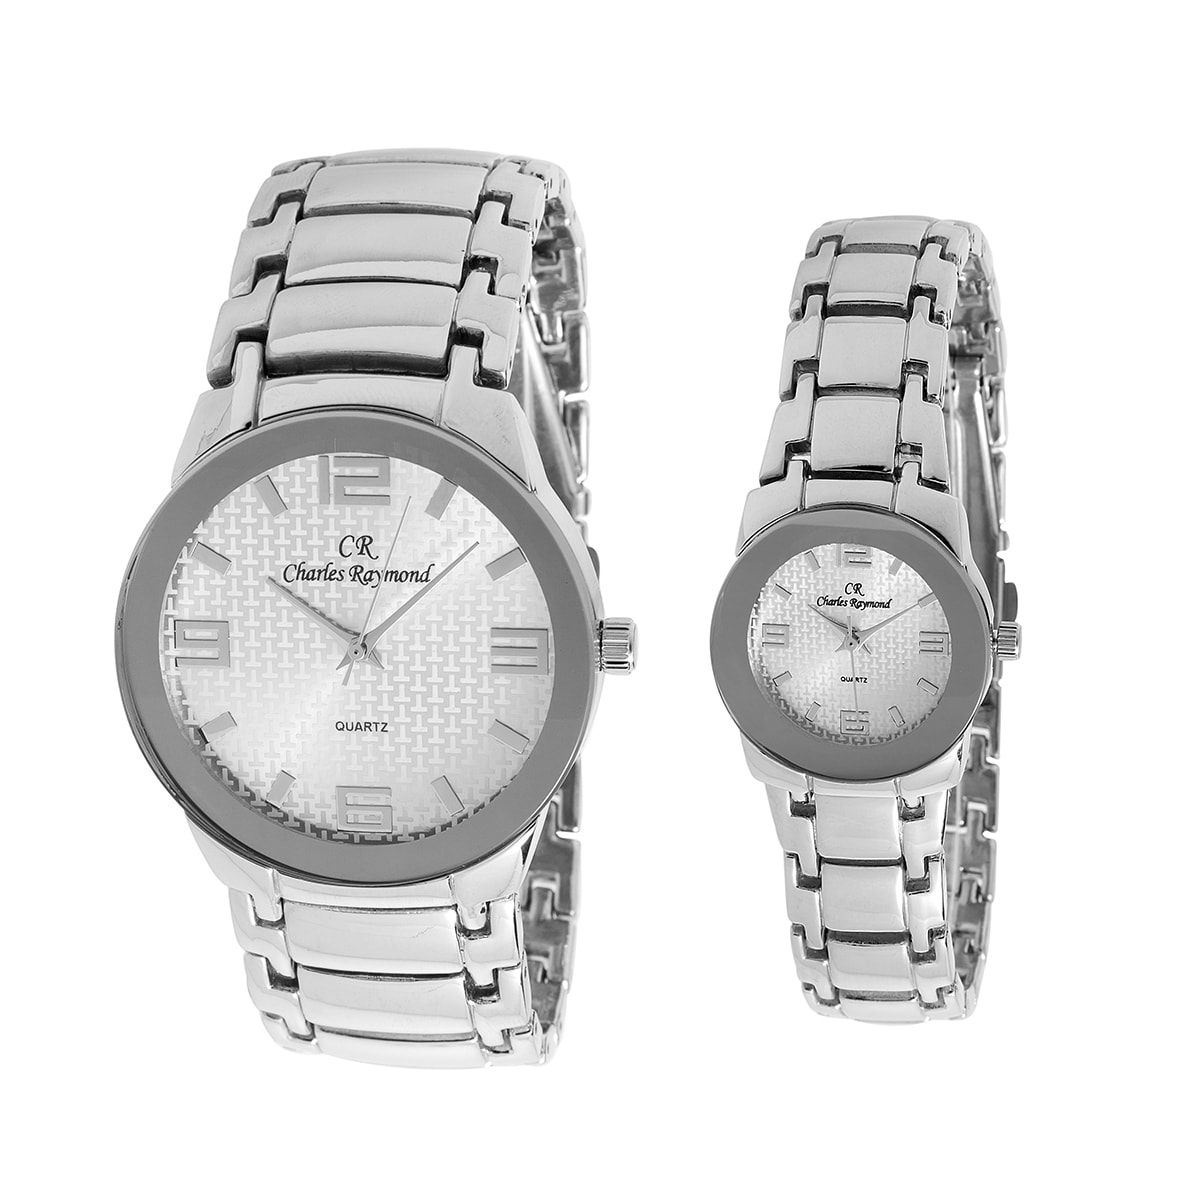 Royal Charles Raymond His and Hers 1478 Silver Tone Watch...